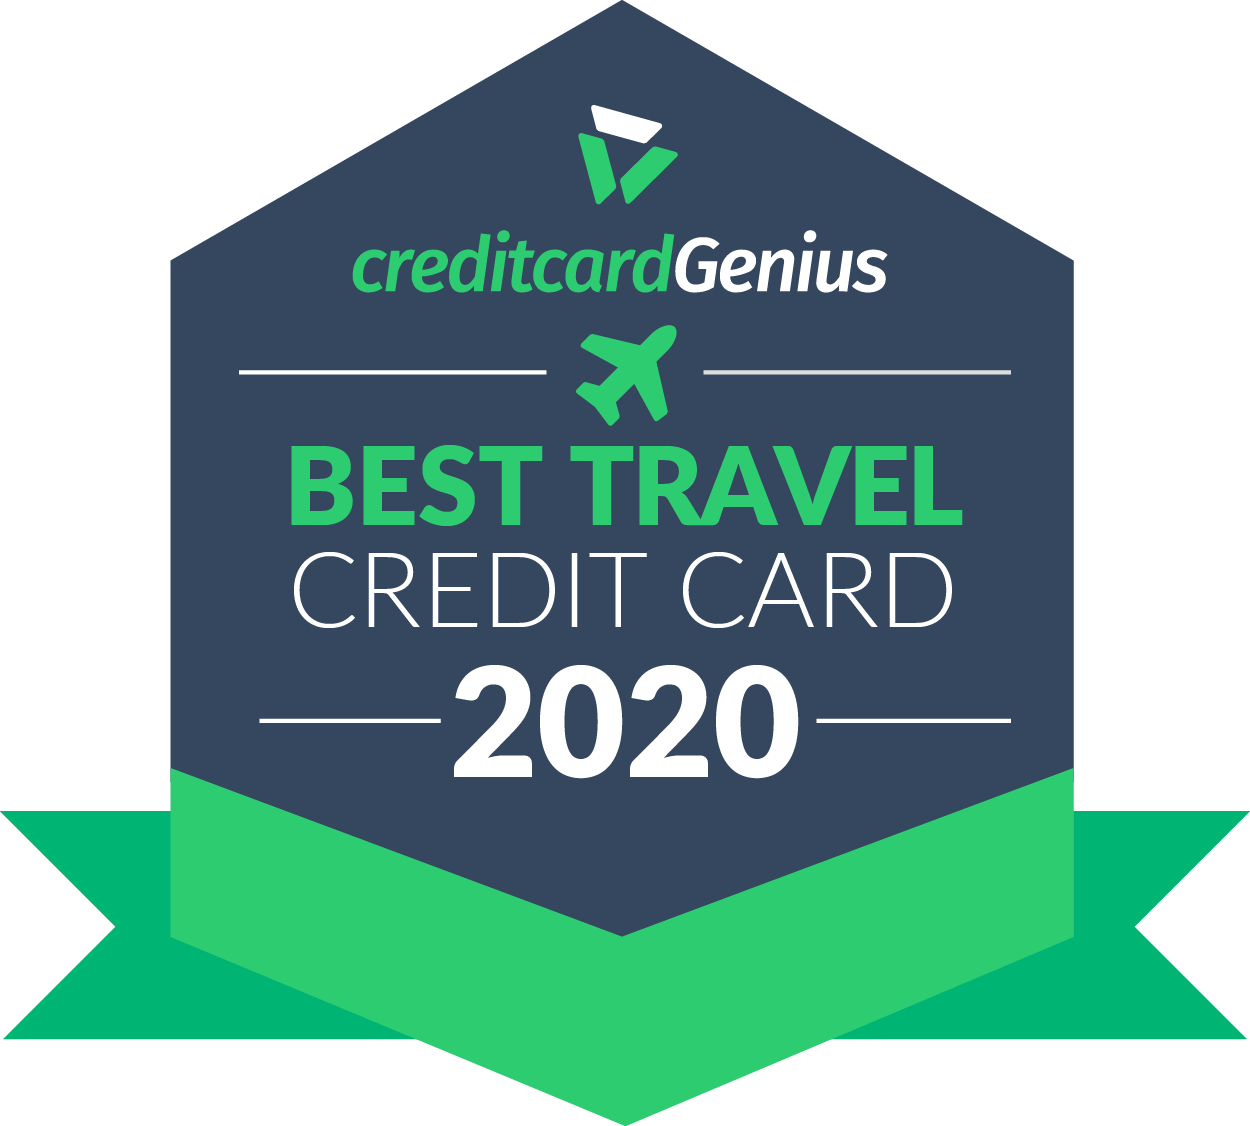 Best travel credit card for 2020 award seal